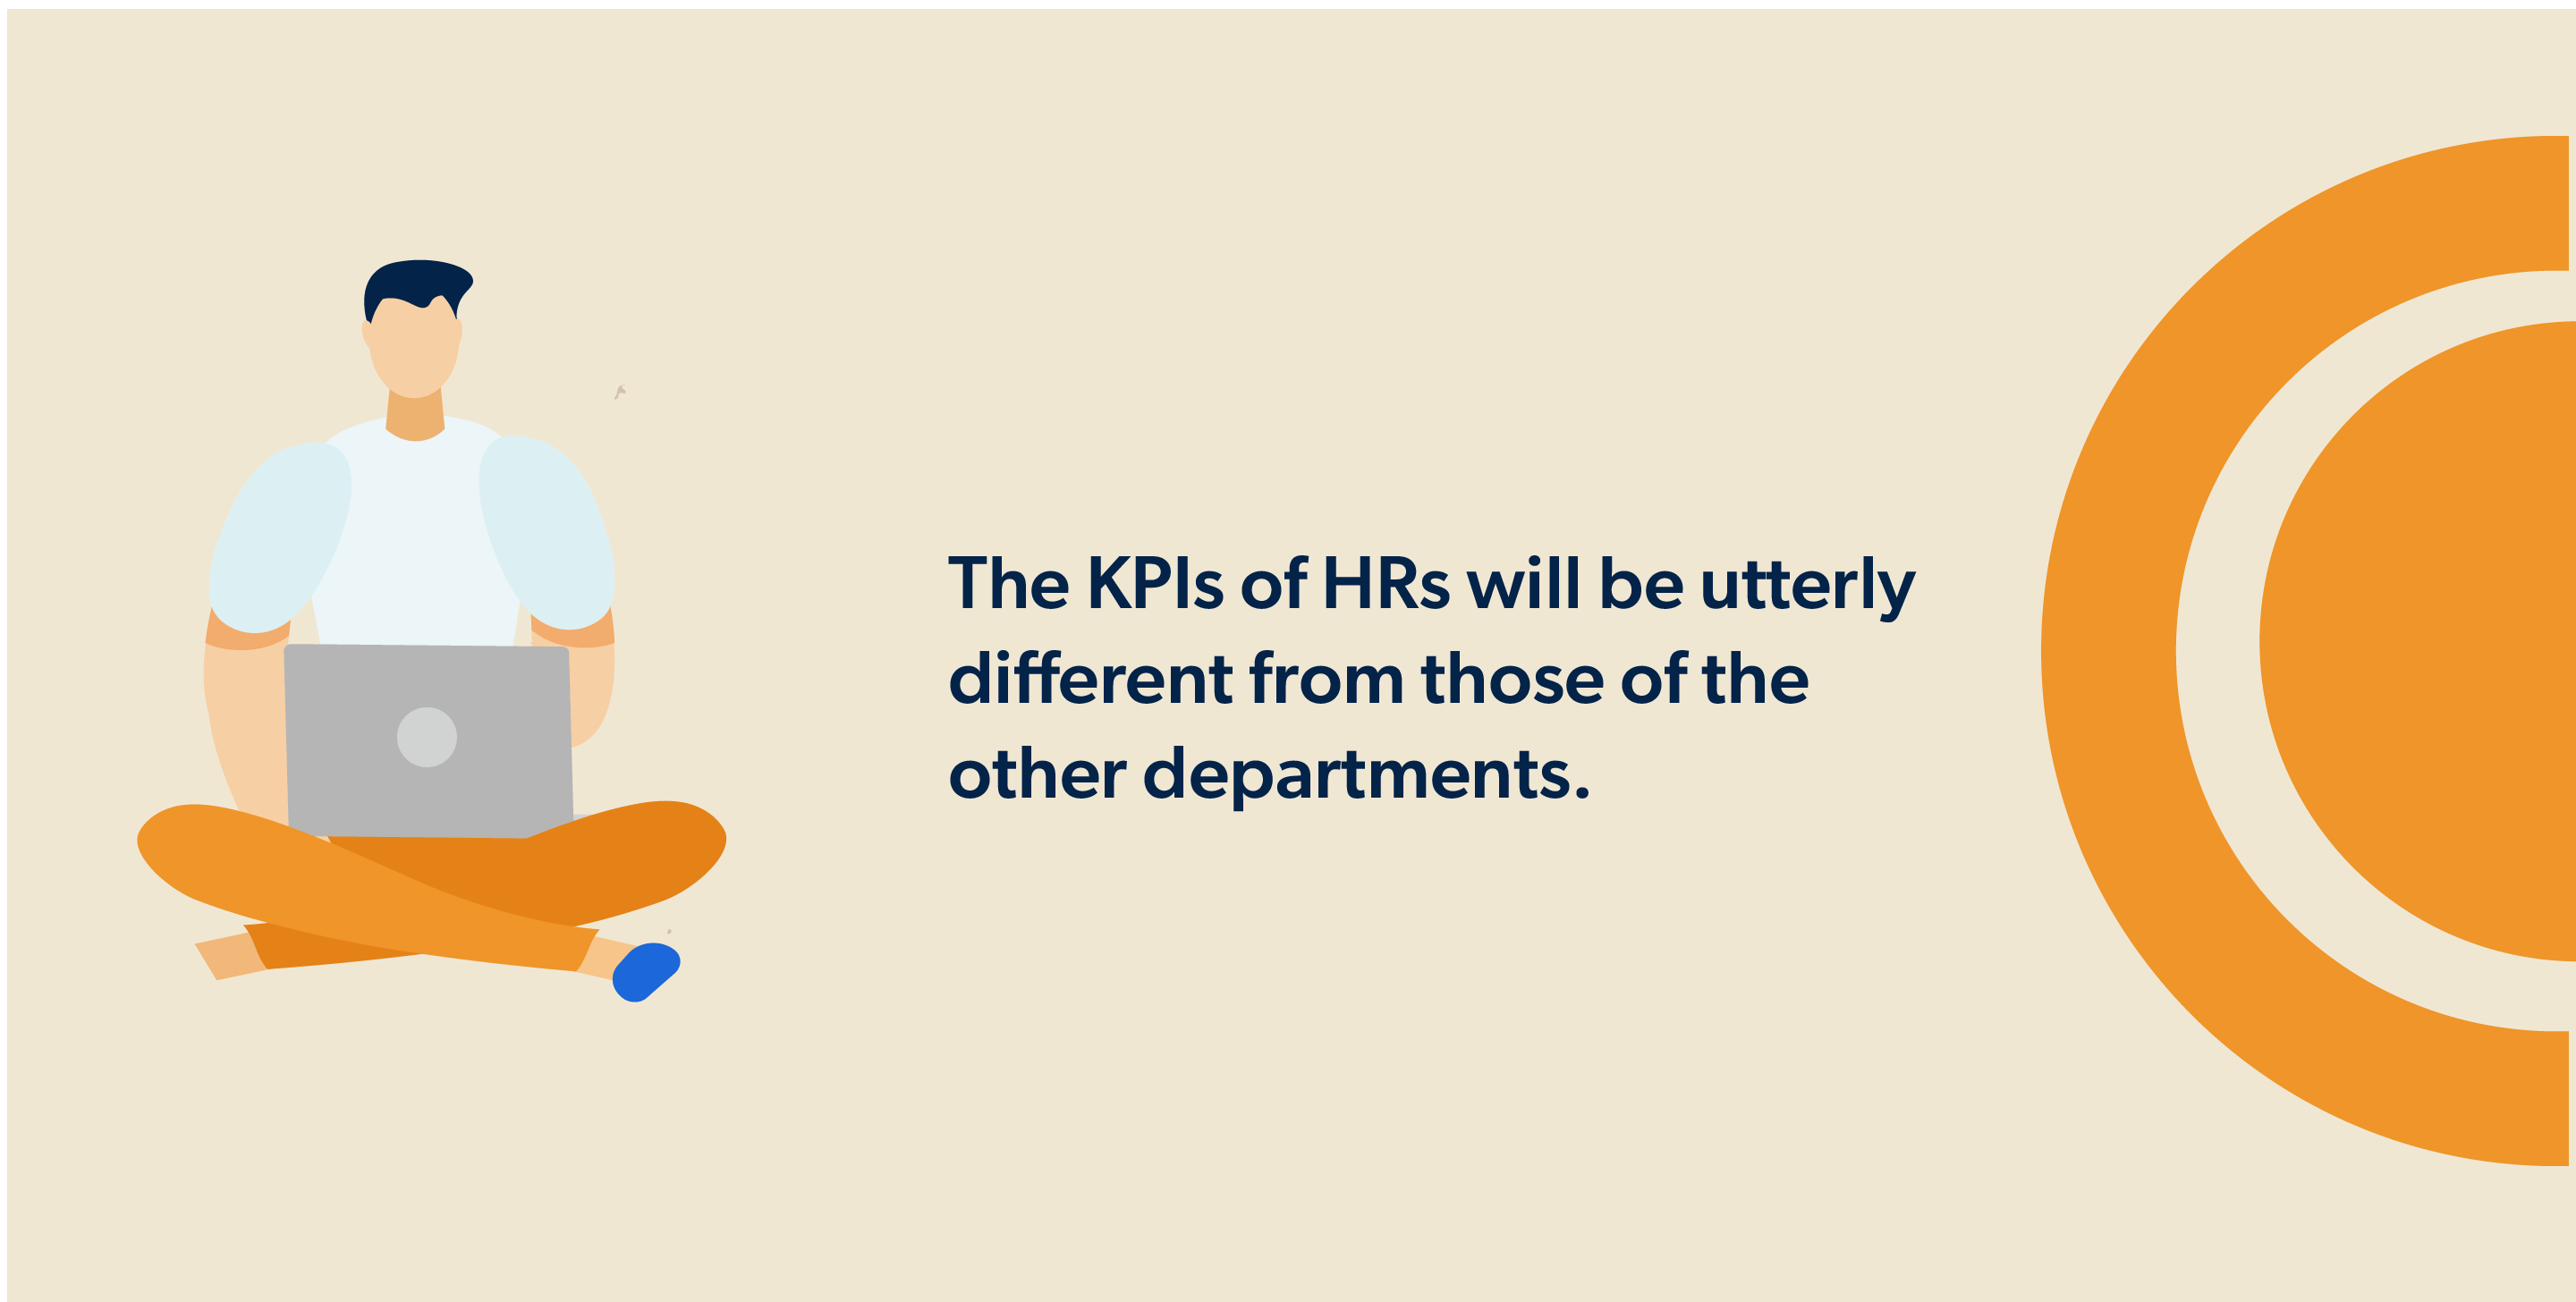 The KPIs of HRs will be utterly different from those of the other departments.